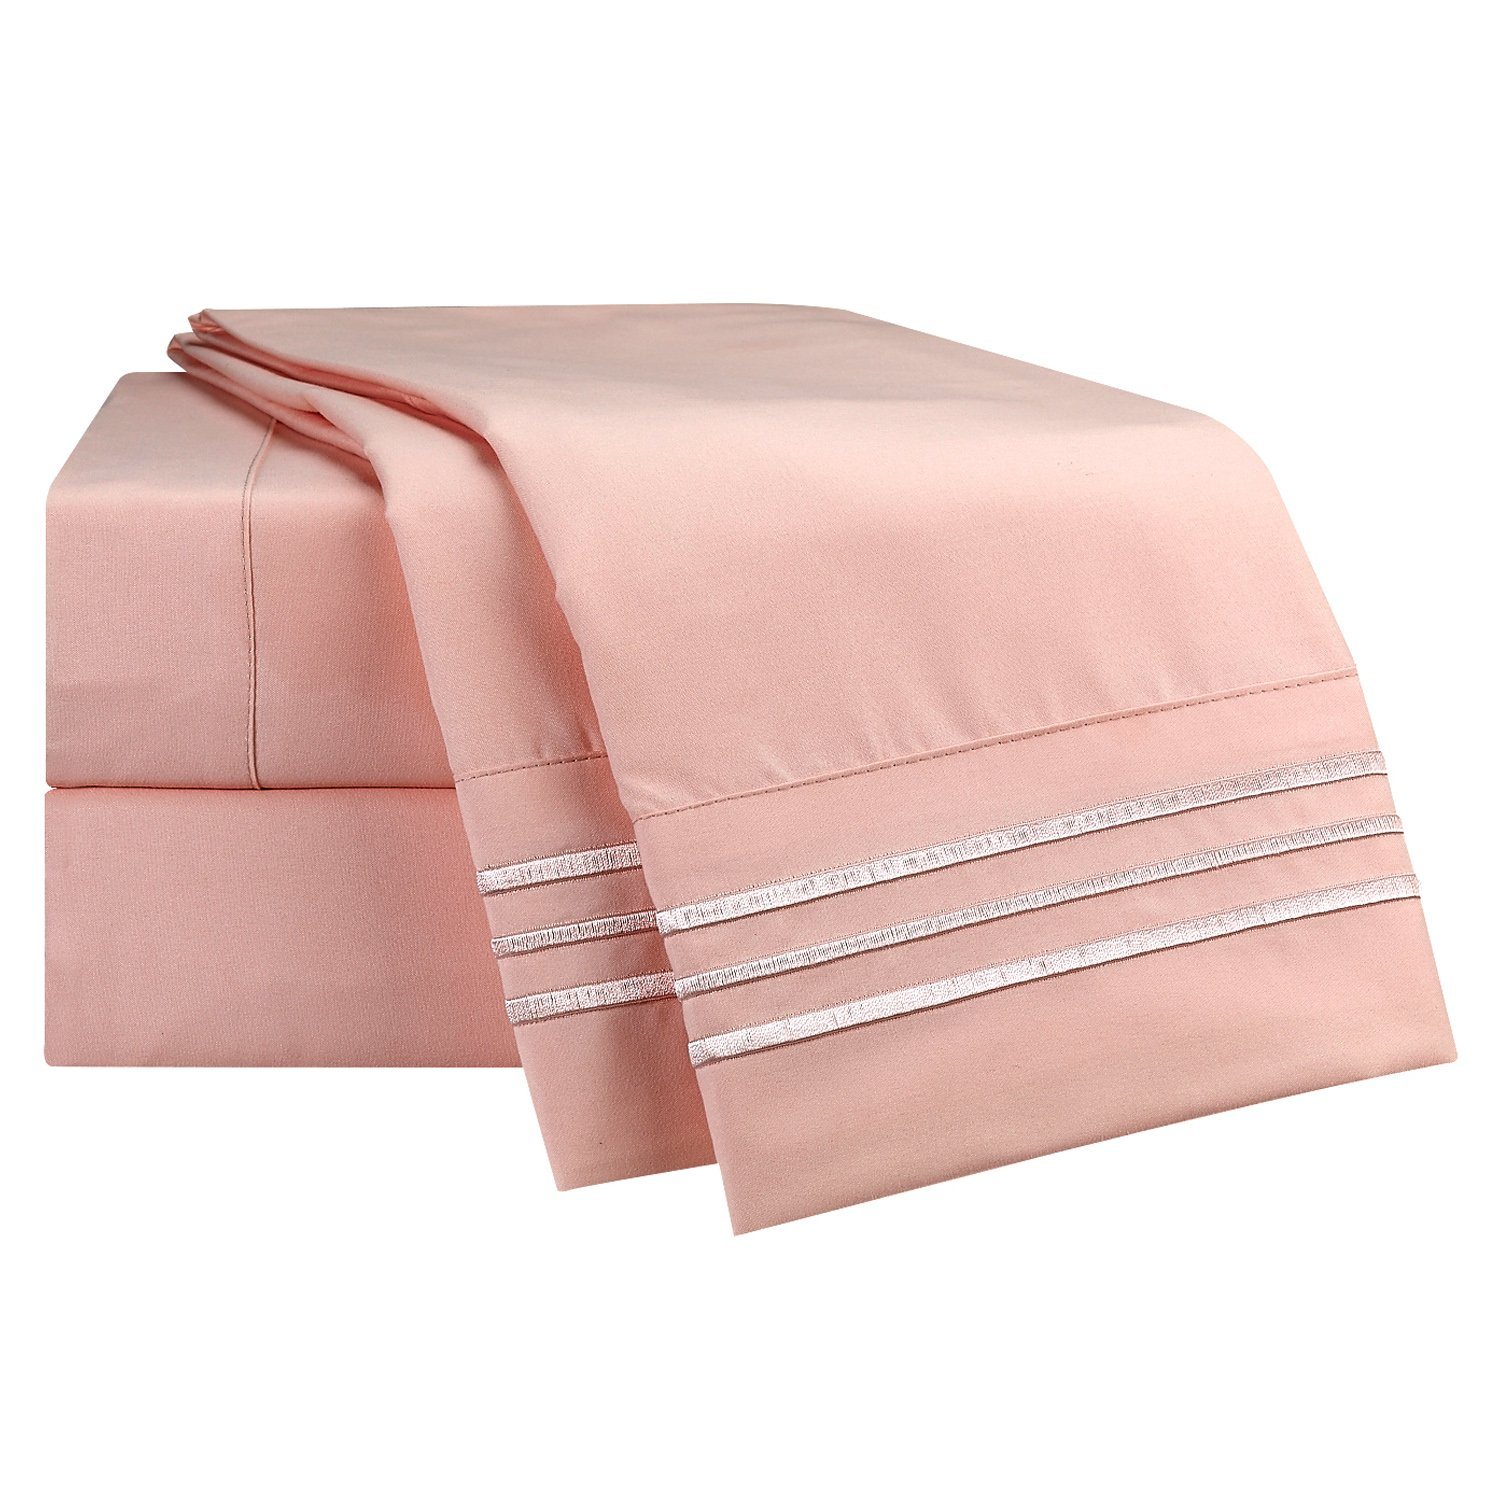 Full Size Bed Sheets Set Peach, Bedding Sheets Set on Amazon, 4-Piece Bed Set, Deep Pockets Fitted Sheet, 100% Luxury Soft Microfiber, Hypoallergenic, Cool & Breathable by Nestl Bedding (Image #6)